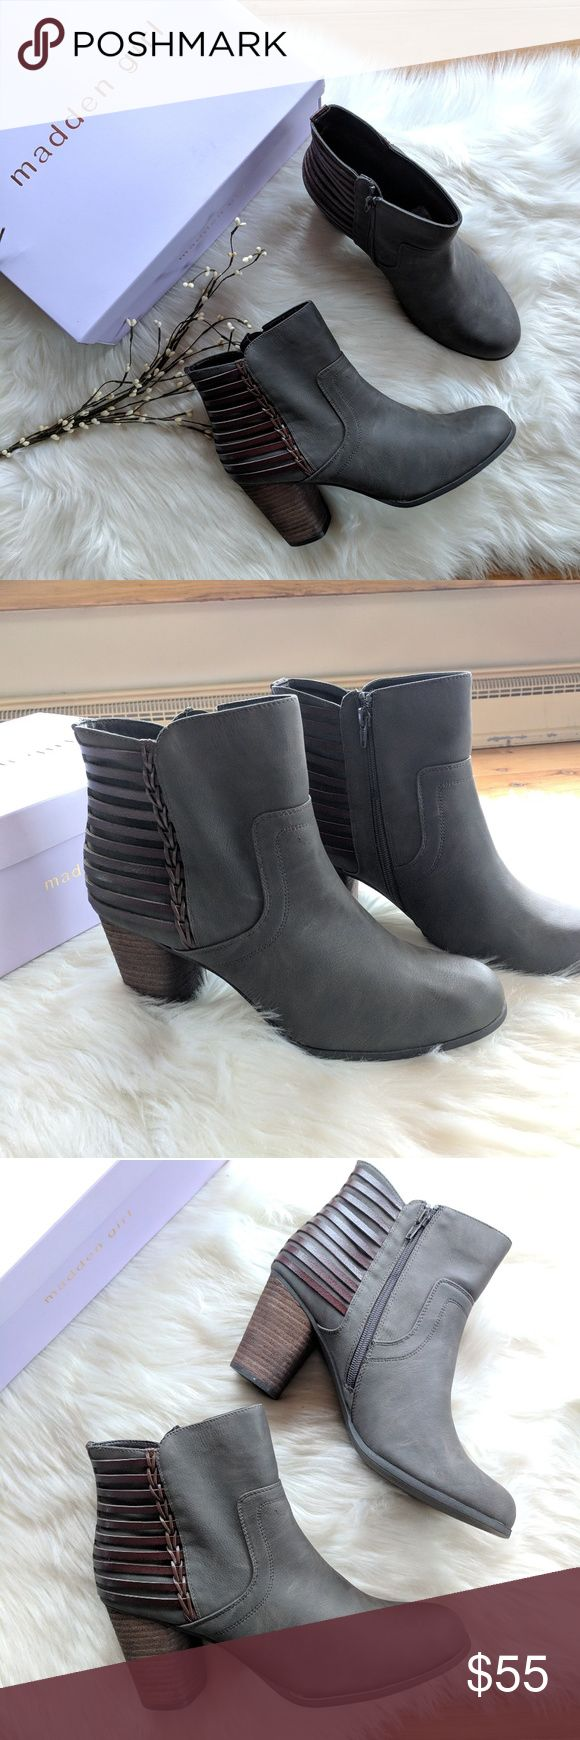 """{Madden Girl} dusk stone Pari boots New with tags. These heeled ankle boots are sure to catch your eye. Dusk stone color. Stacked heel is about 3.25 - 3.5"""" high. Back zipper opening. Leather like straps across the back add an adorable touch. Size 11 Madden Girl Shoes Ankle Boots & Booties"""